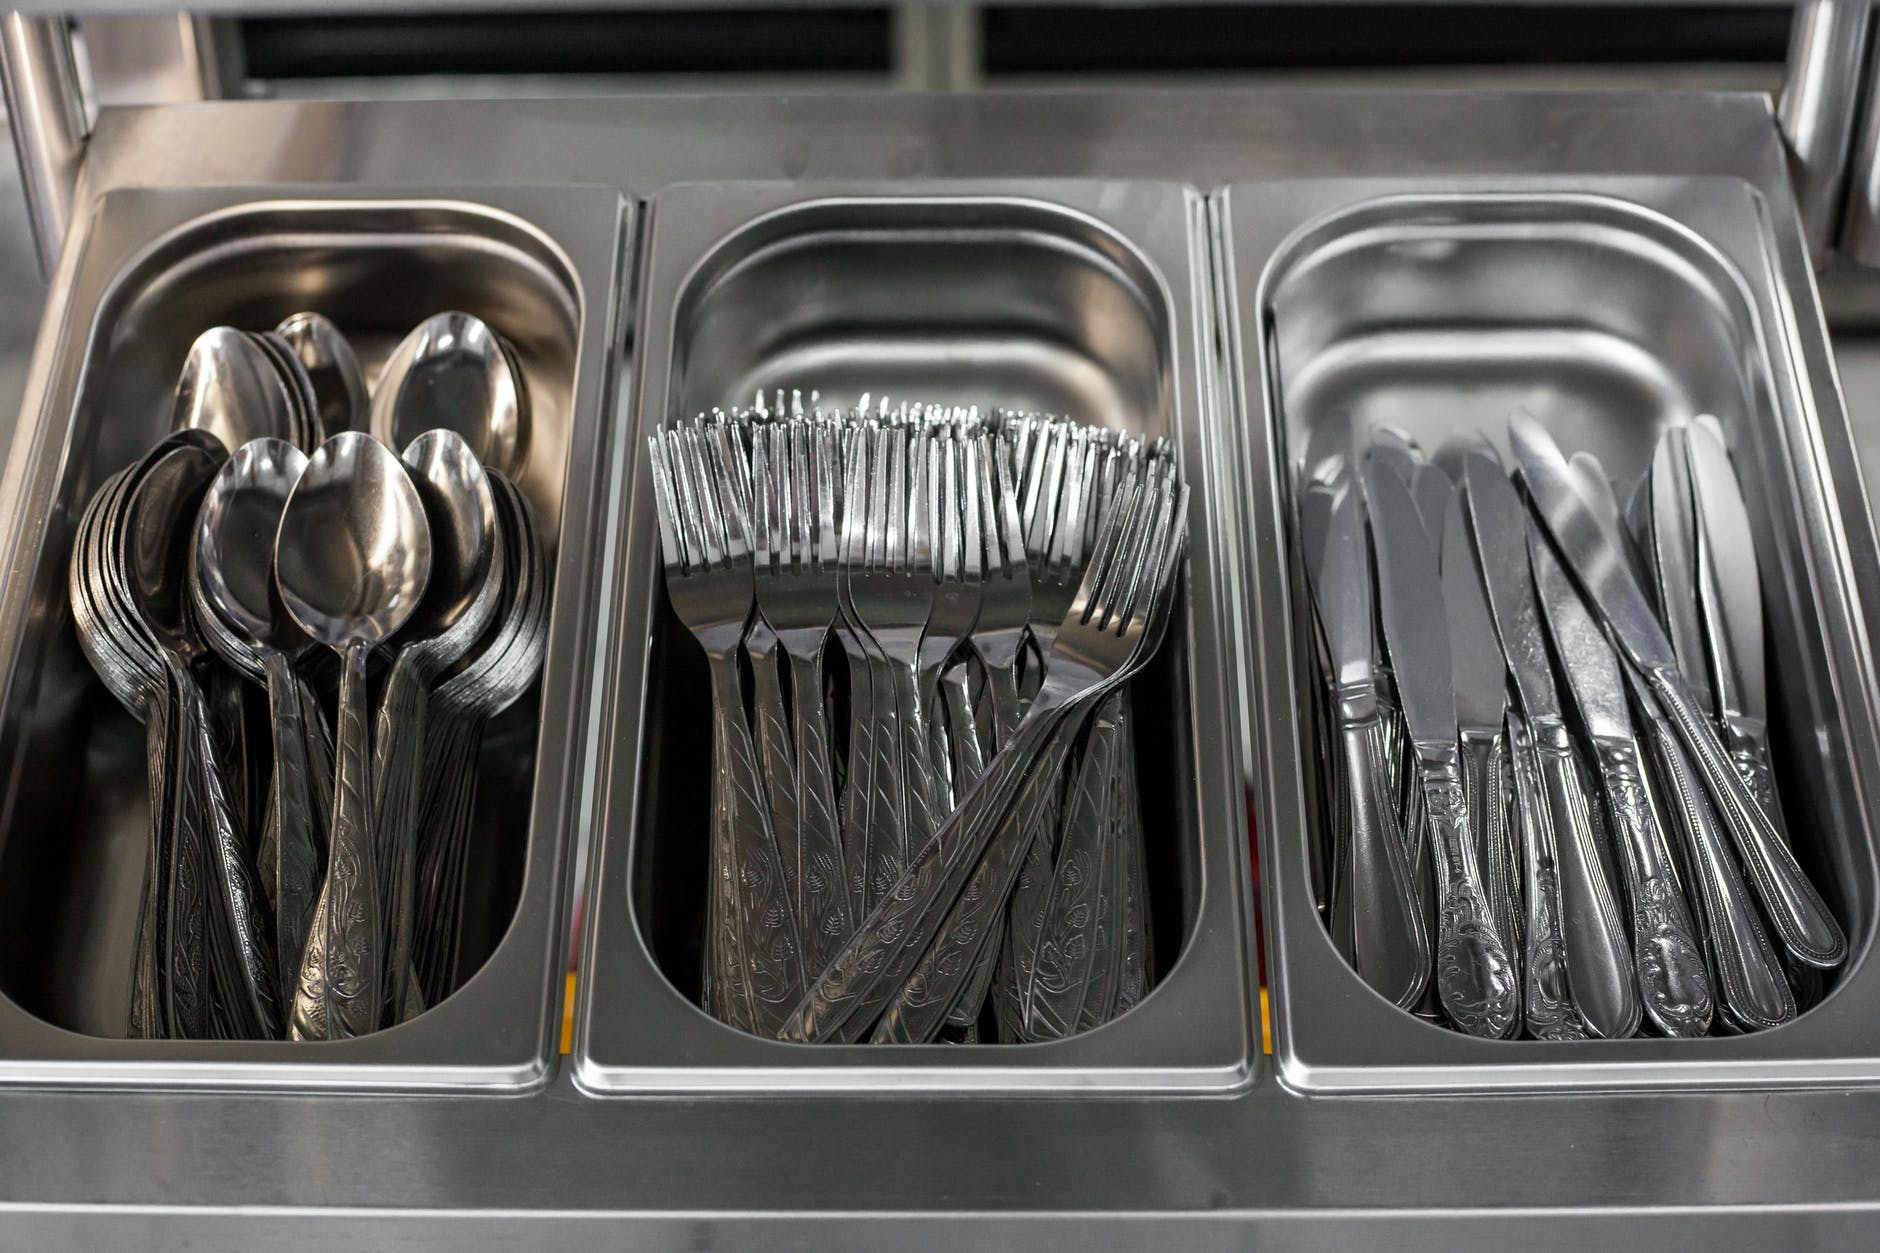 set of kitchen utensils in metal containers